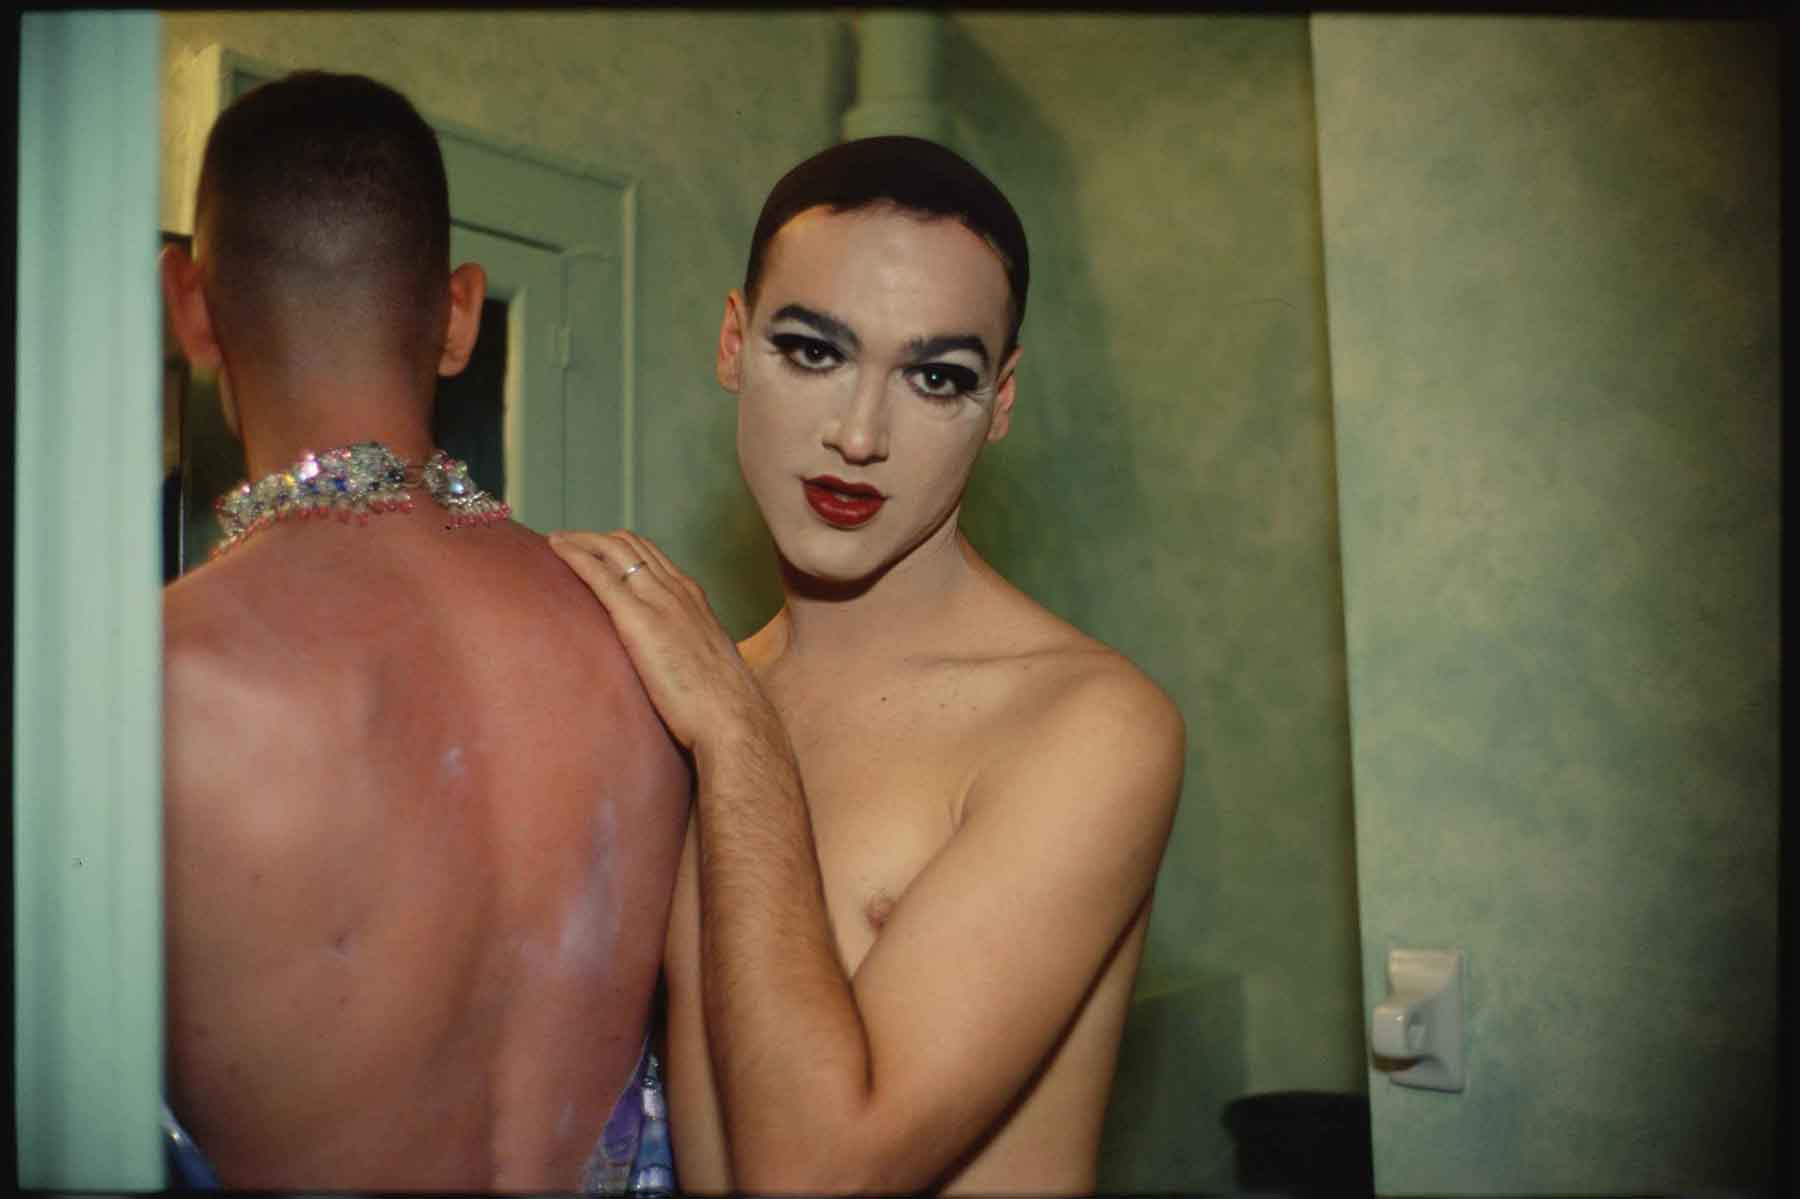 If You Like Nan Goldin, You'll Love These Artists